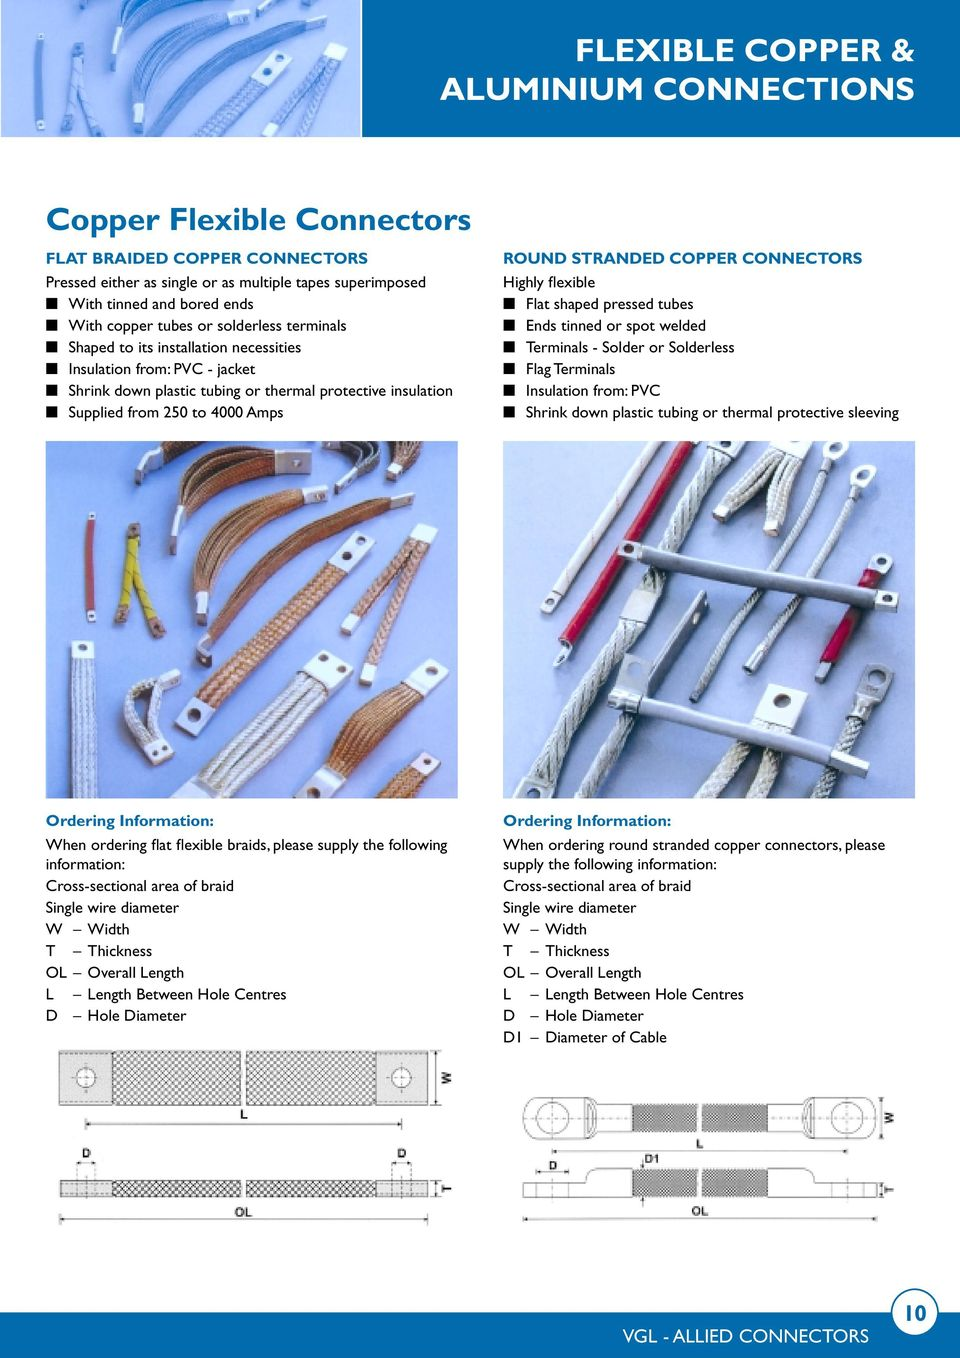 Flexible Copper Aluminium Connections Product Range 1 Vgl Electrical Wire Conductor Bv Electric Flat Shaped Pressed Tubes Ends Tinned Or Spot Welded Terminals Solder Solderless Flag